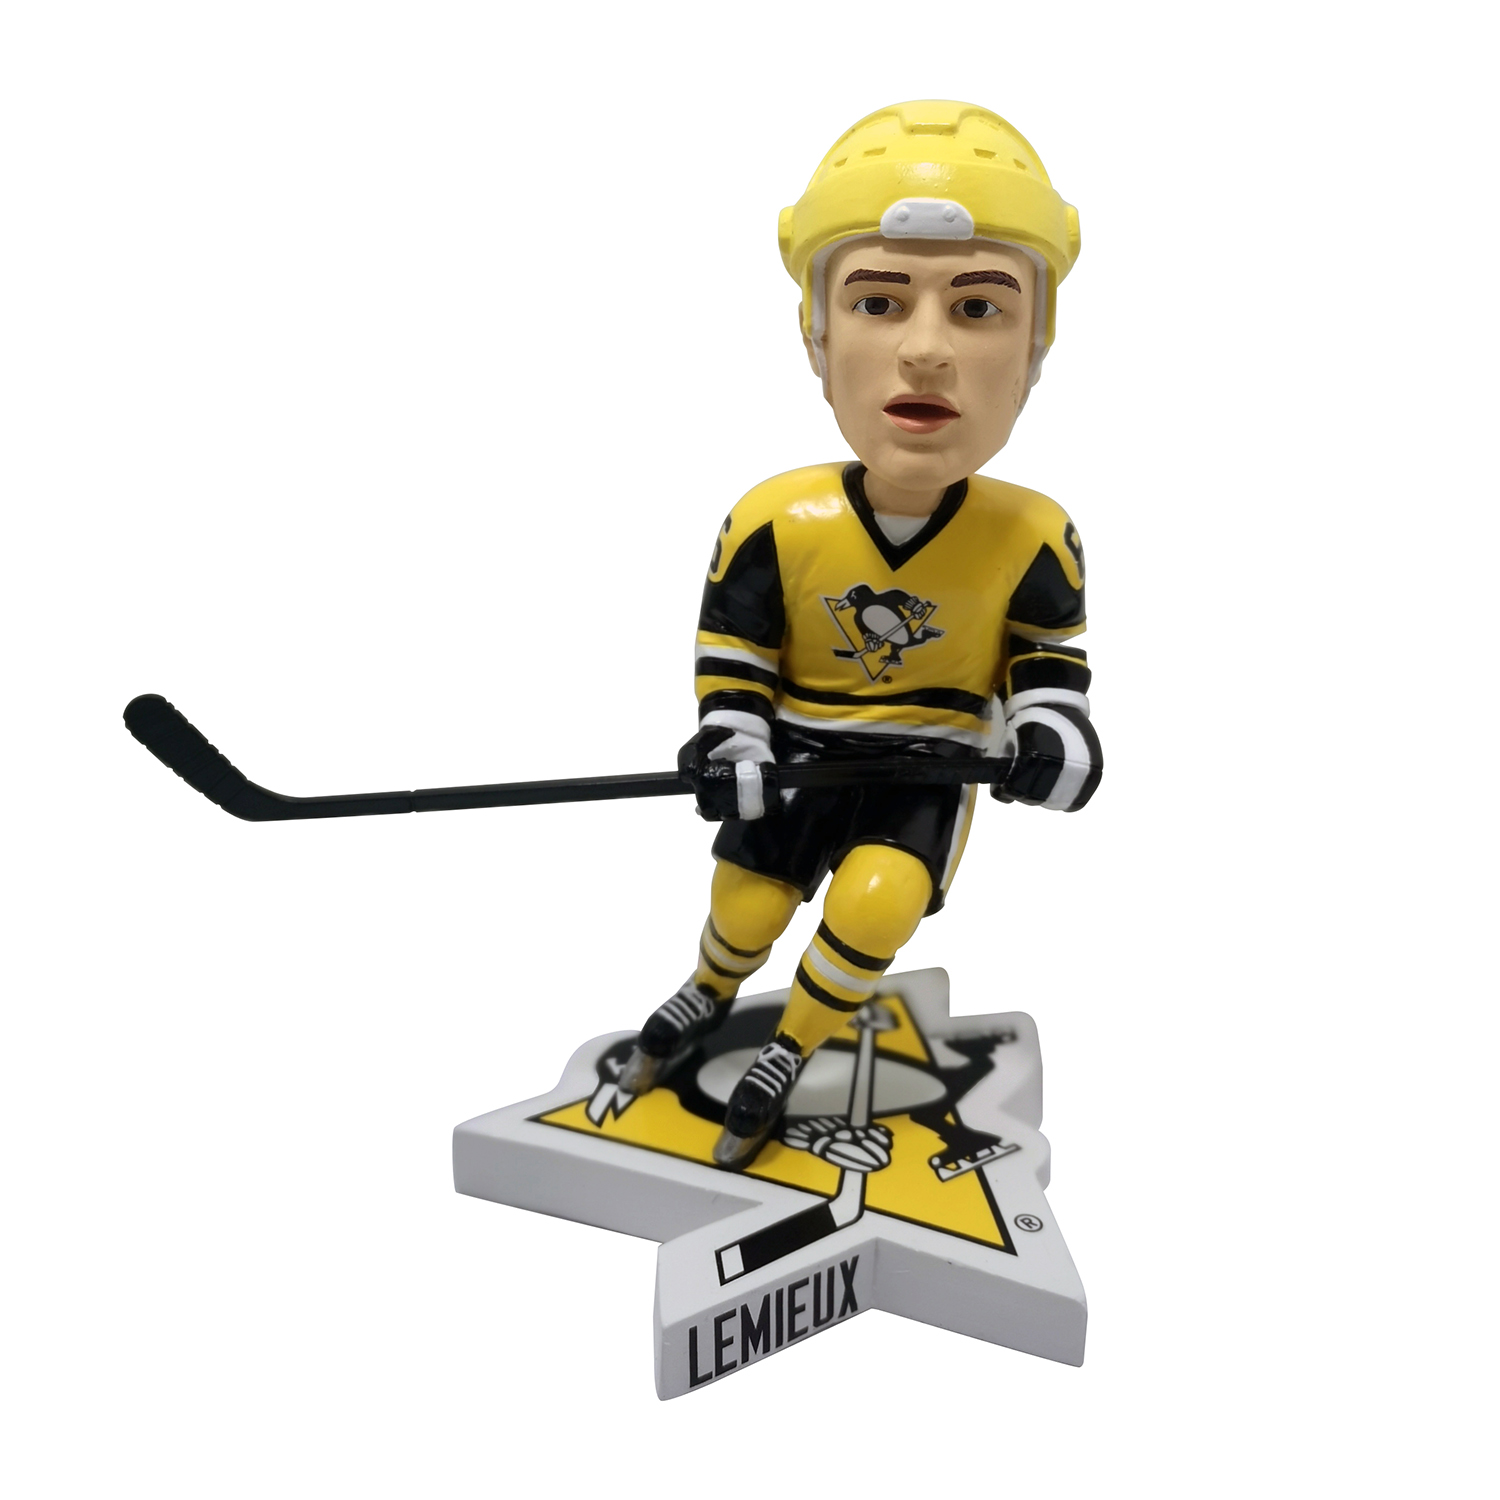 Pittsburgh Penguins Mario Lemieux Yellow Helmet Bobblehead